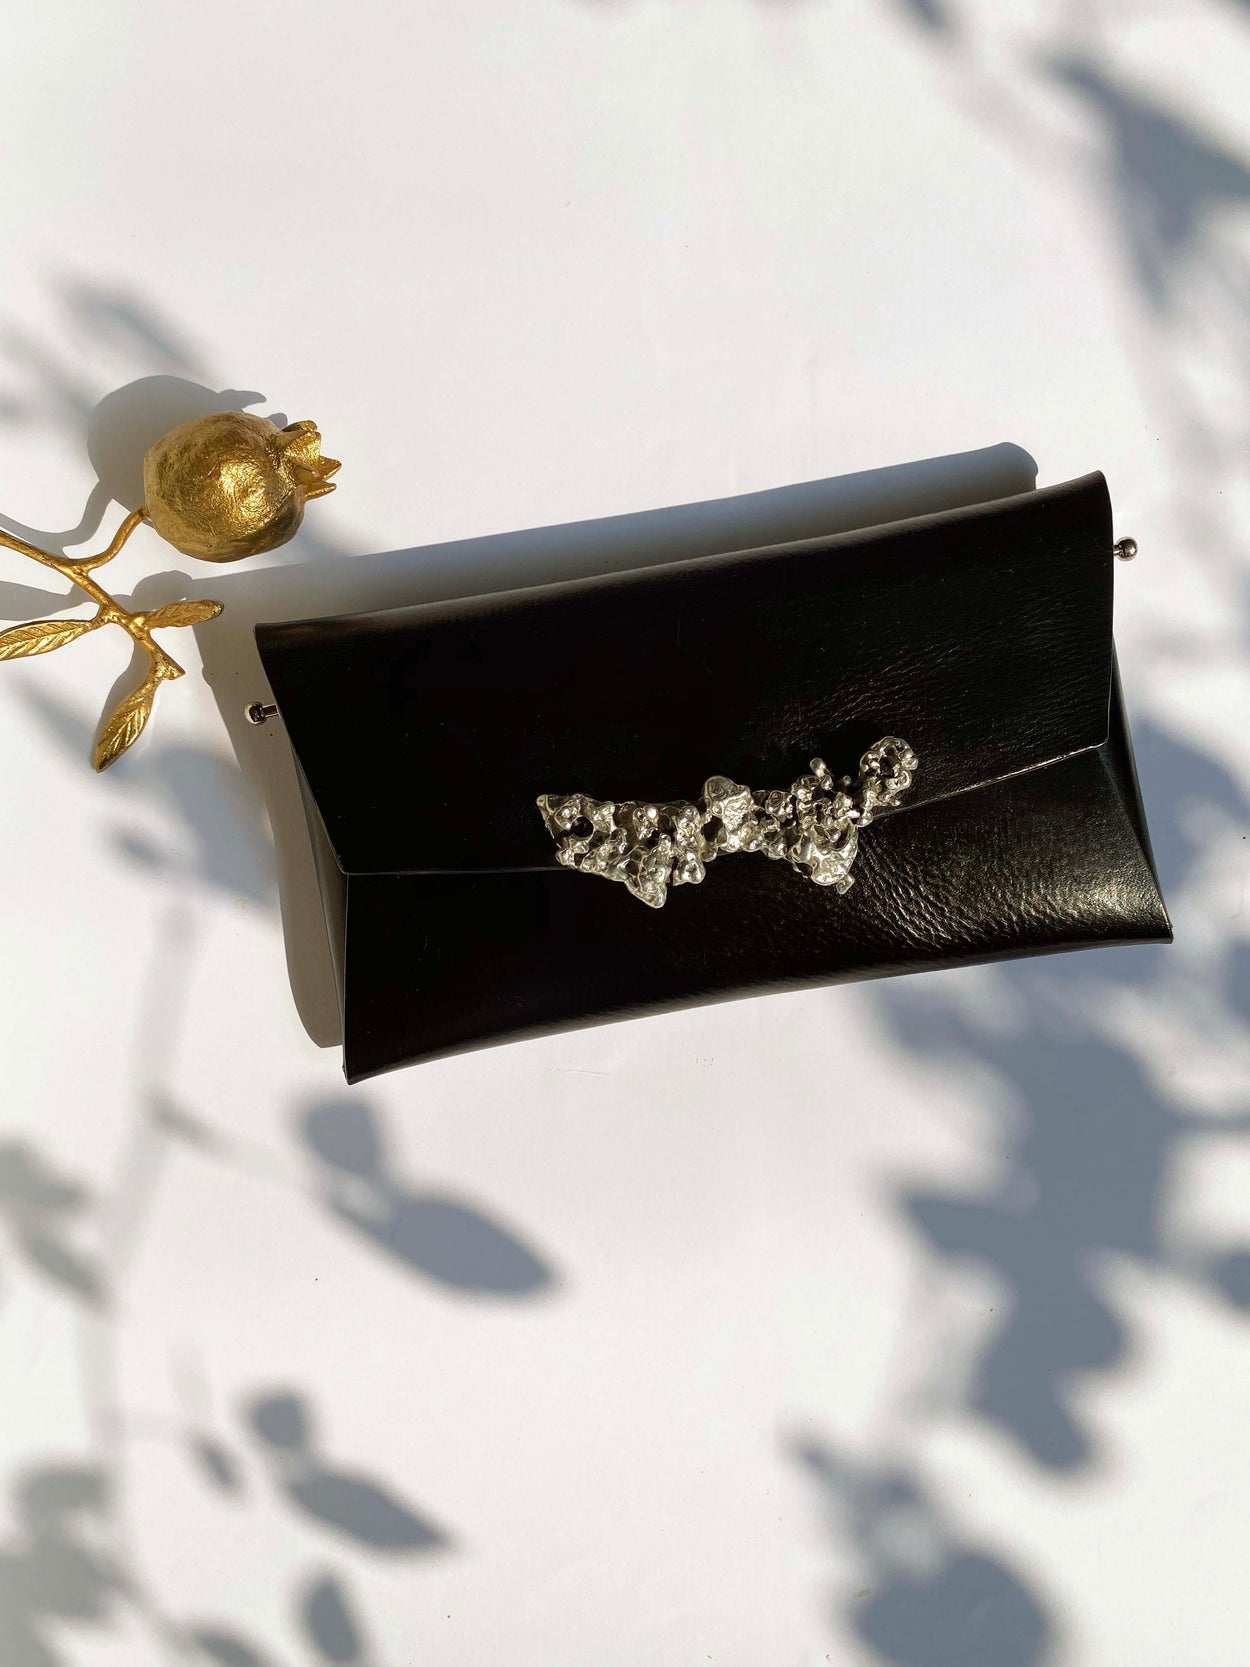 The Alum Stone Clutch - Limited Edition